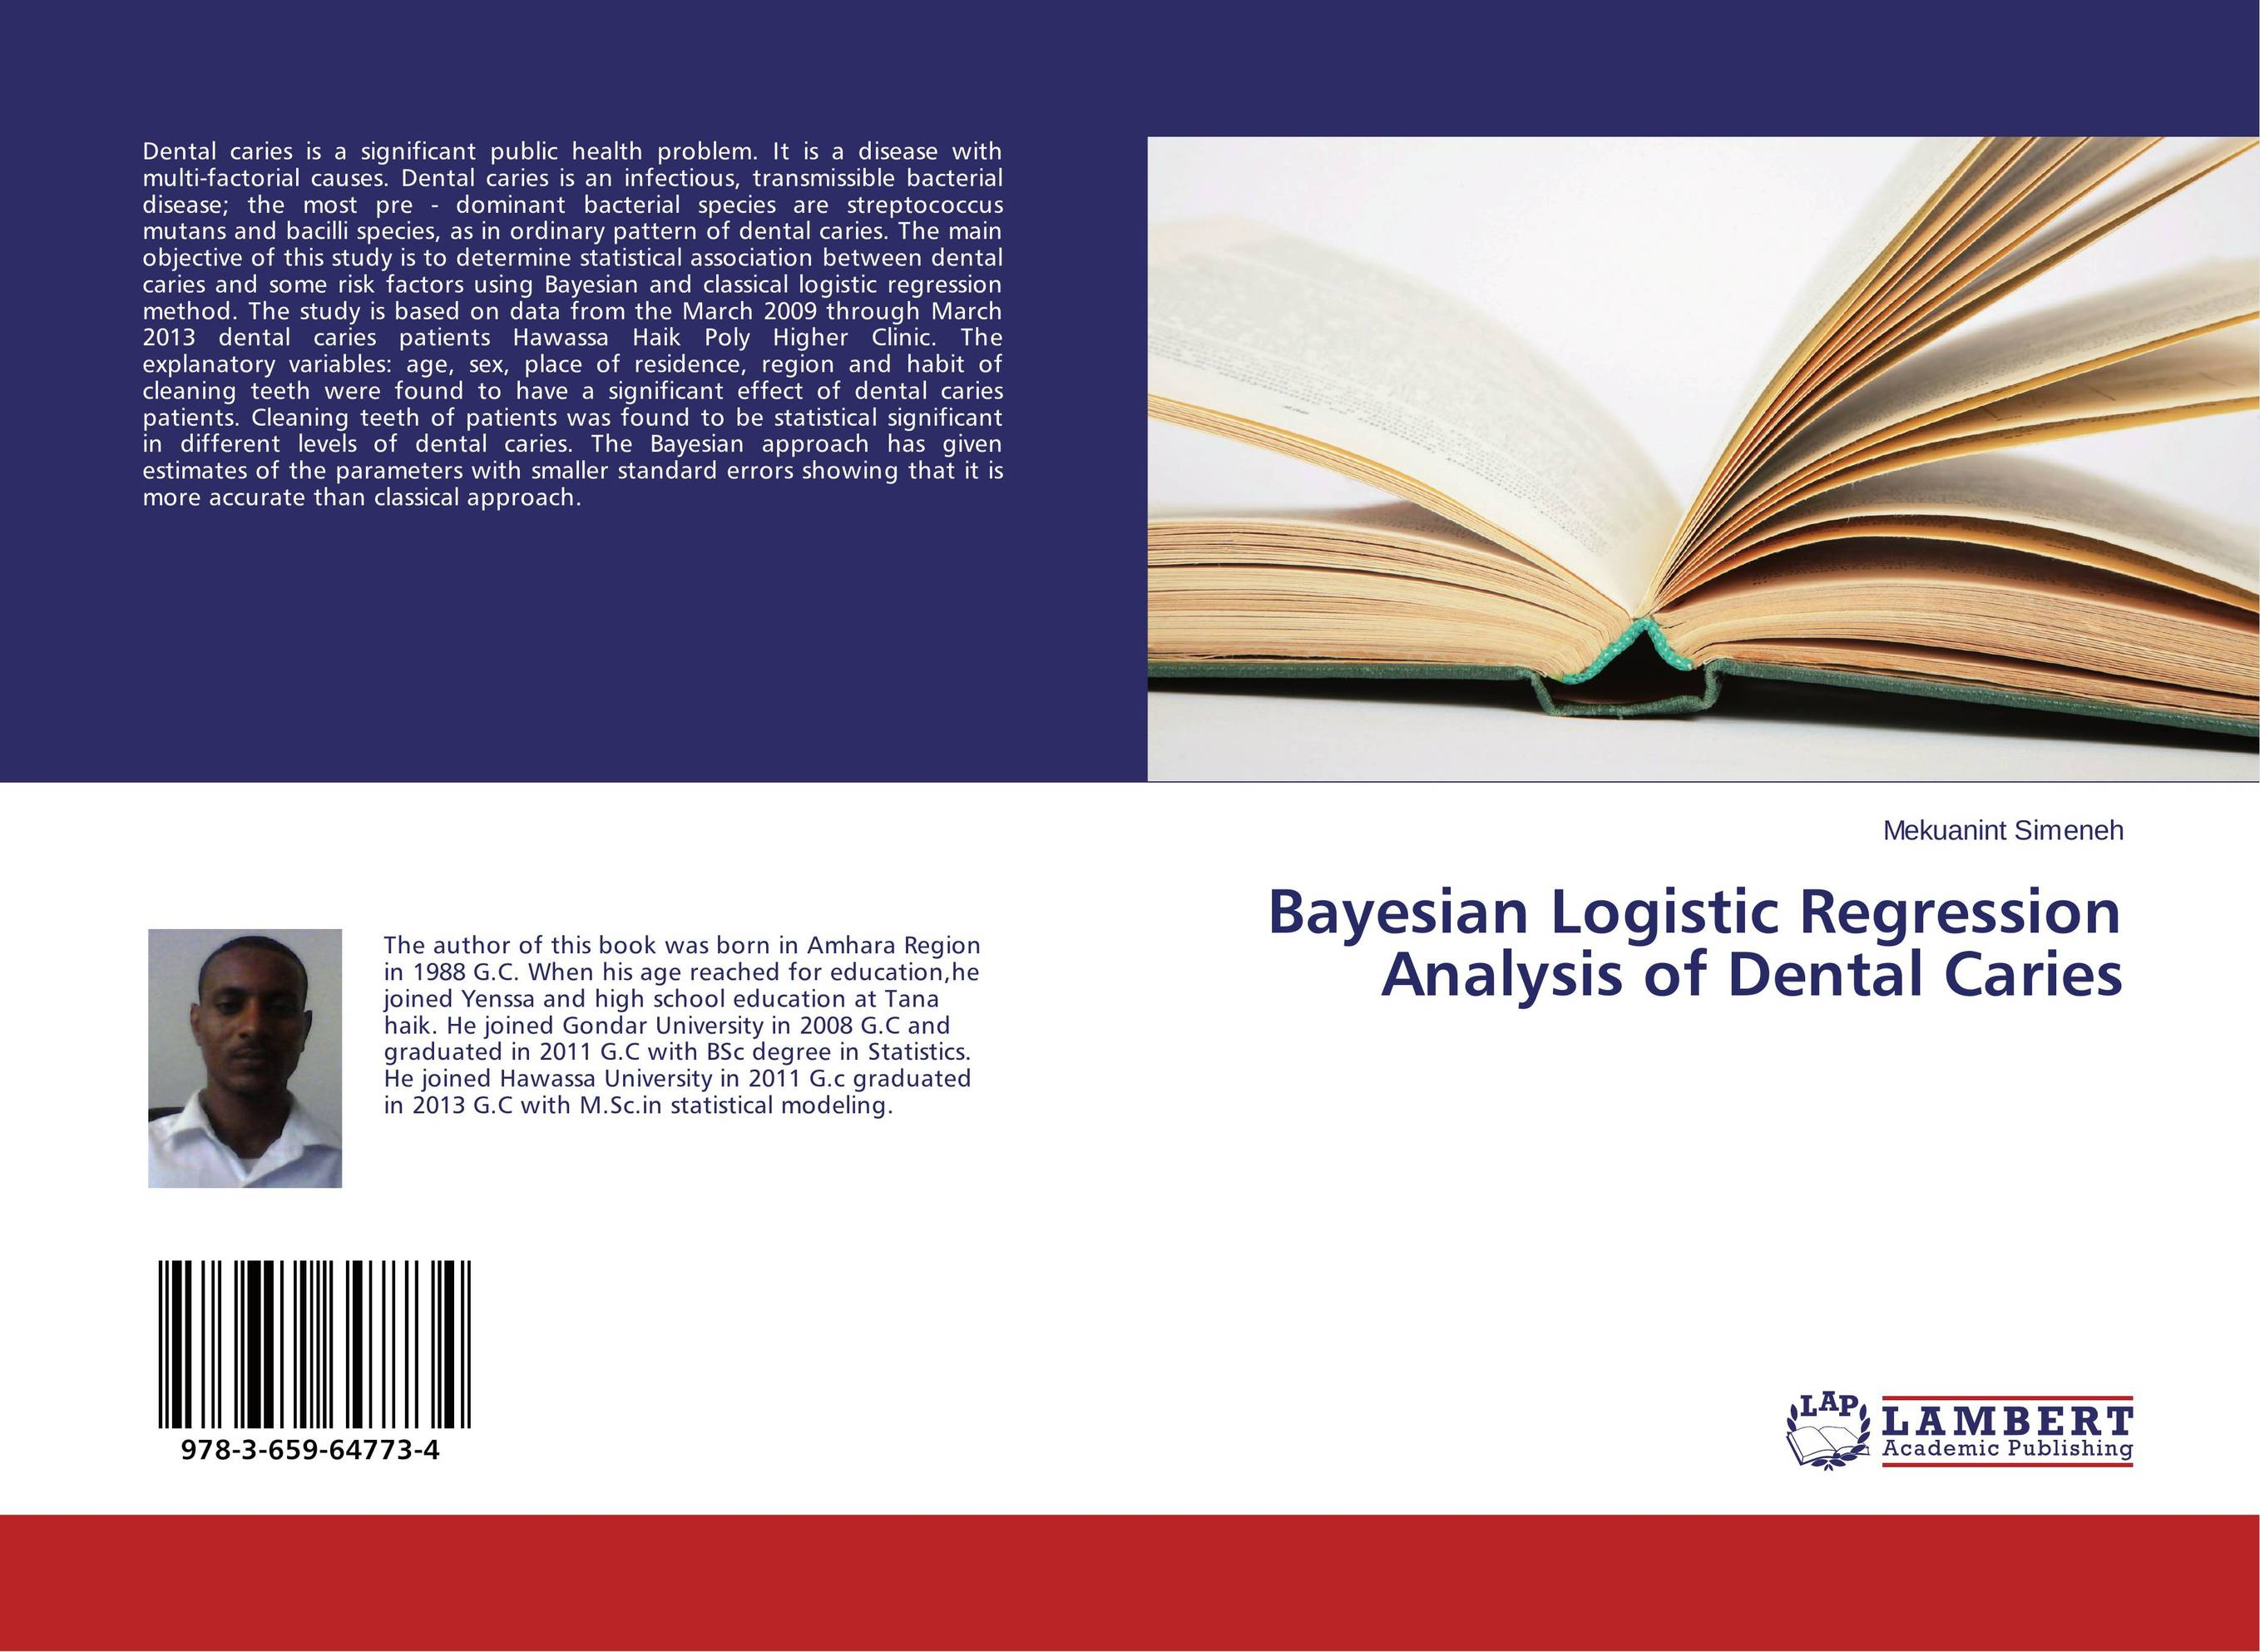 Bayesian Logistic Regression Analysis of Dental Caries